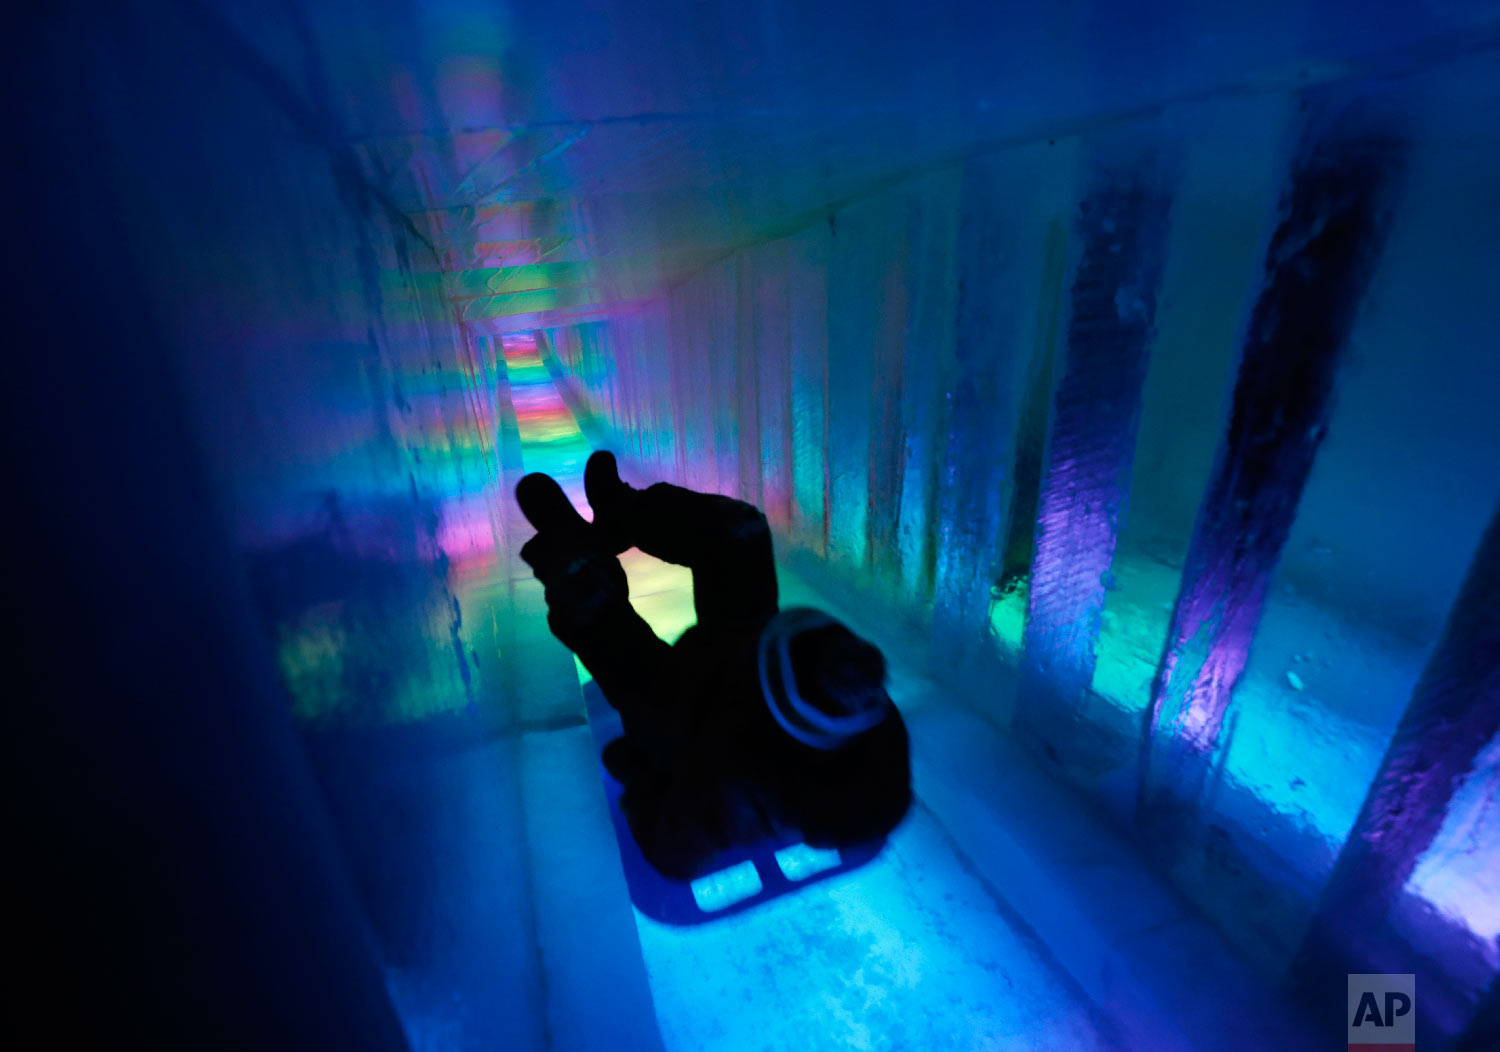 A man zooms down a 97-foot ice slide at Ice Castles in North Woodstock, N.H., on Jan. 26, 2019. (AP Photo/Robert F. Bukaty)